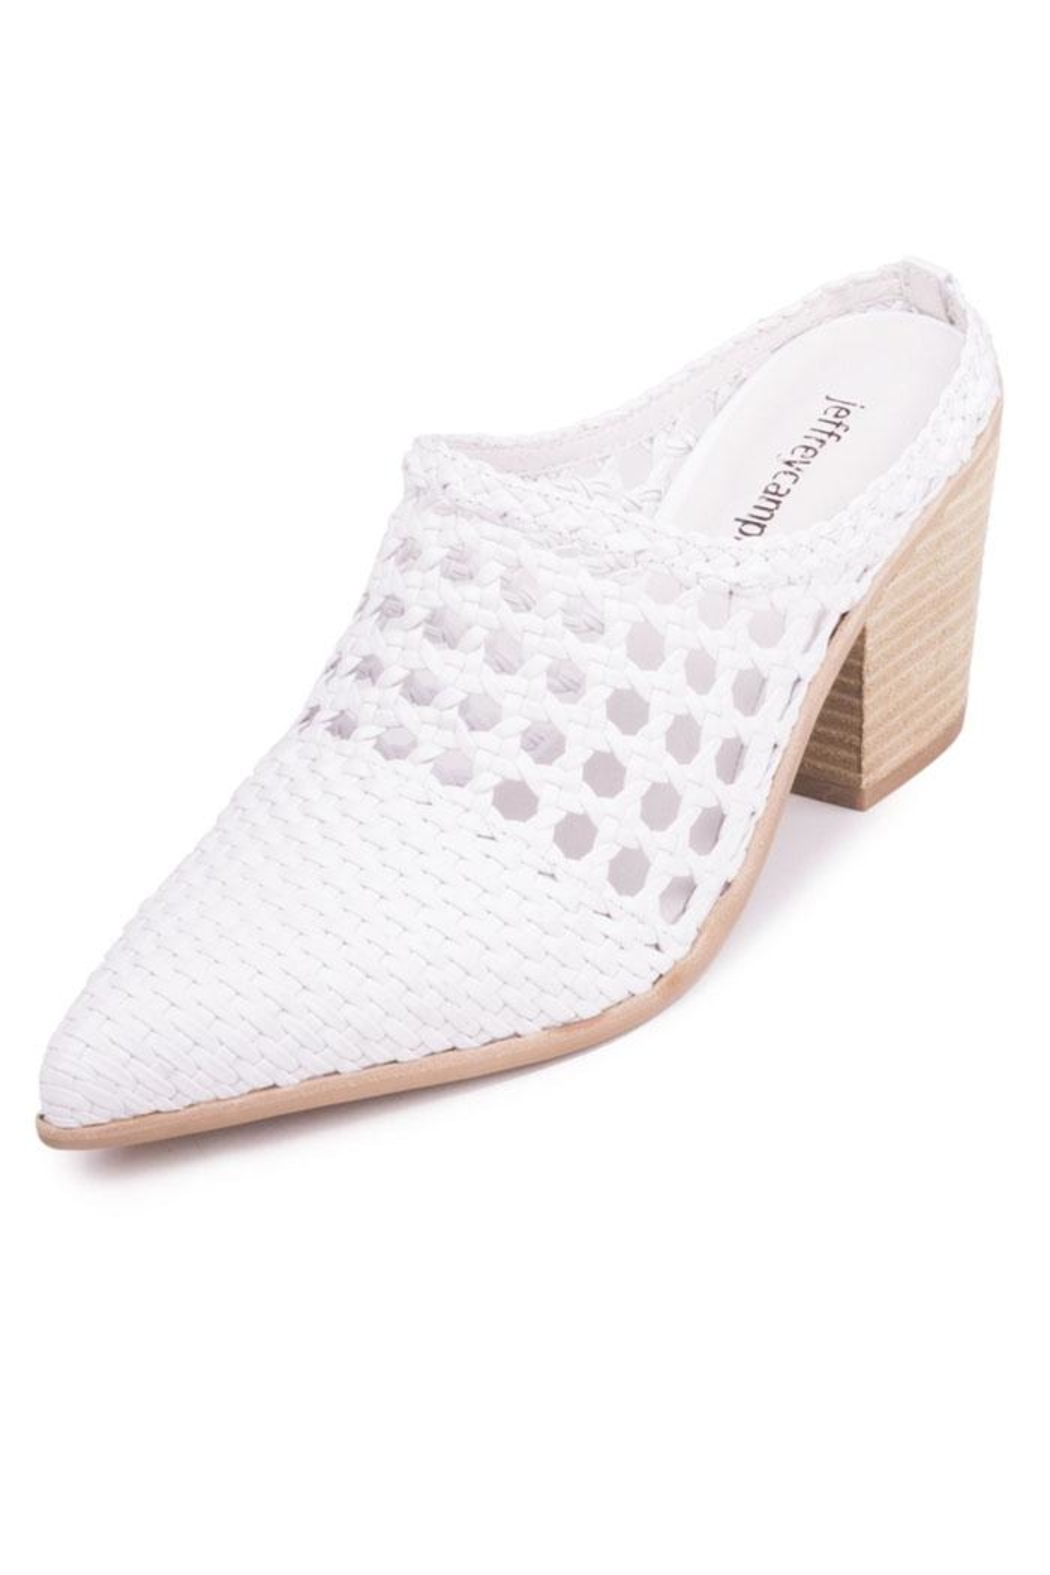 Jeffrey Campbell White Woven Mule - Front Full Image